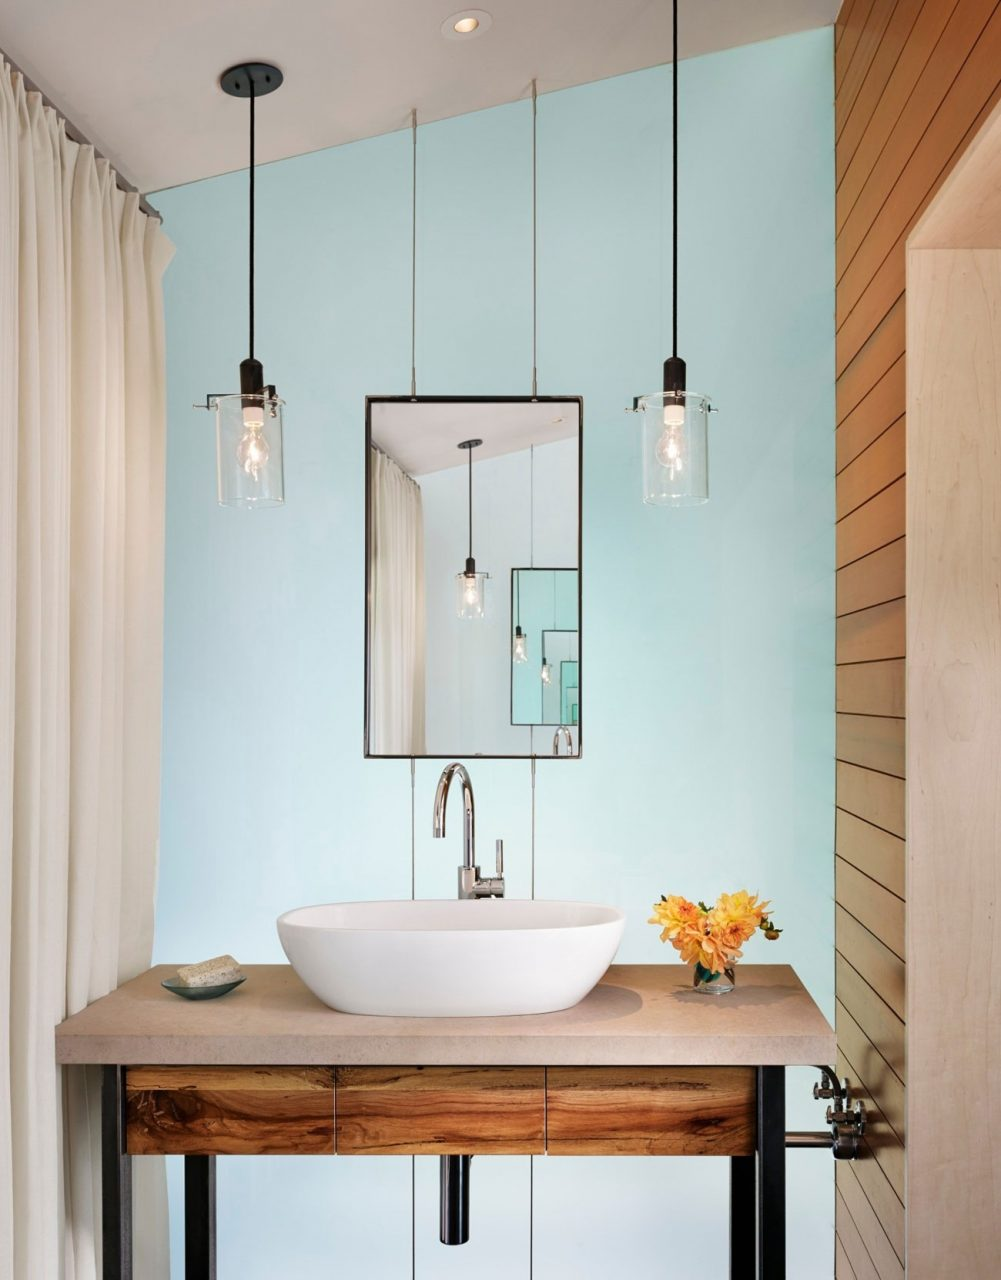 Hanging Bathroom Lighting Custom Light Fixtures Pendant Design From